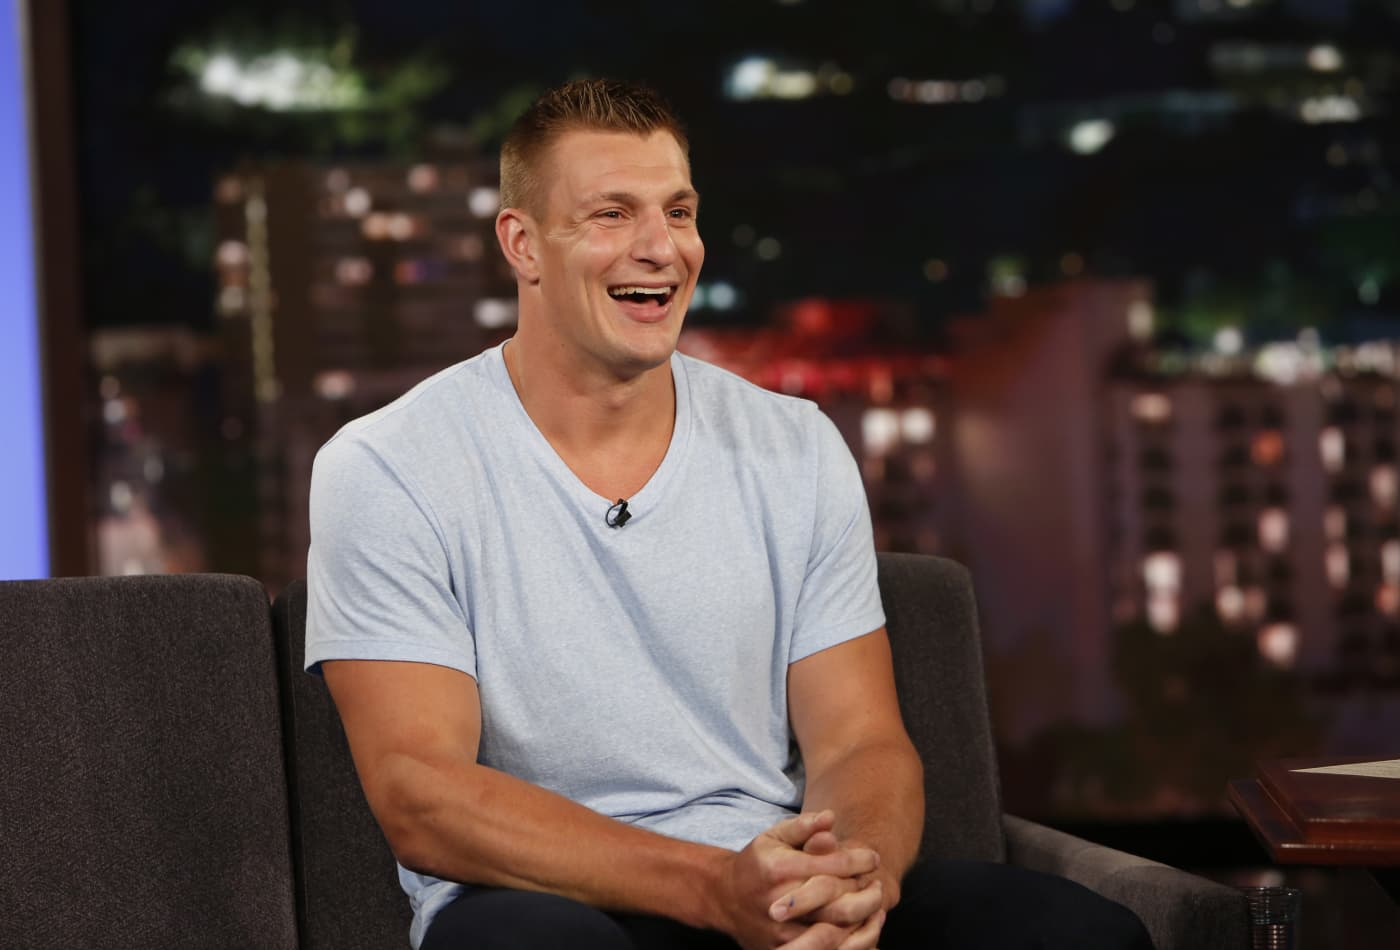 Nfl Star Rob Gronkowski Makes 8 Million But Still Has A